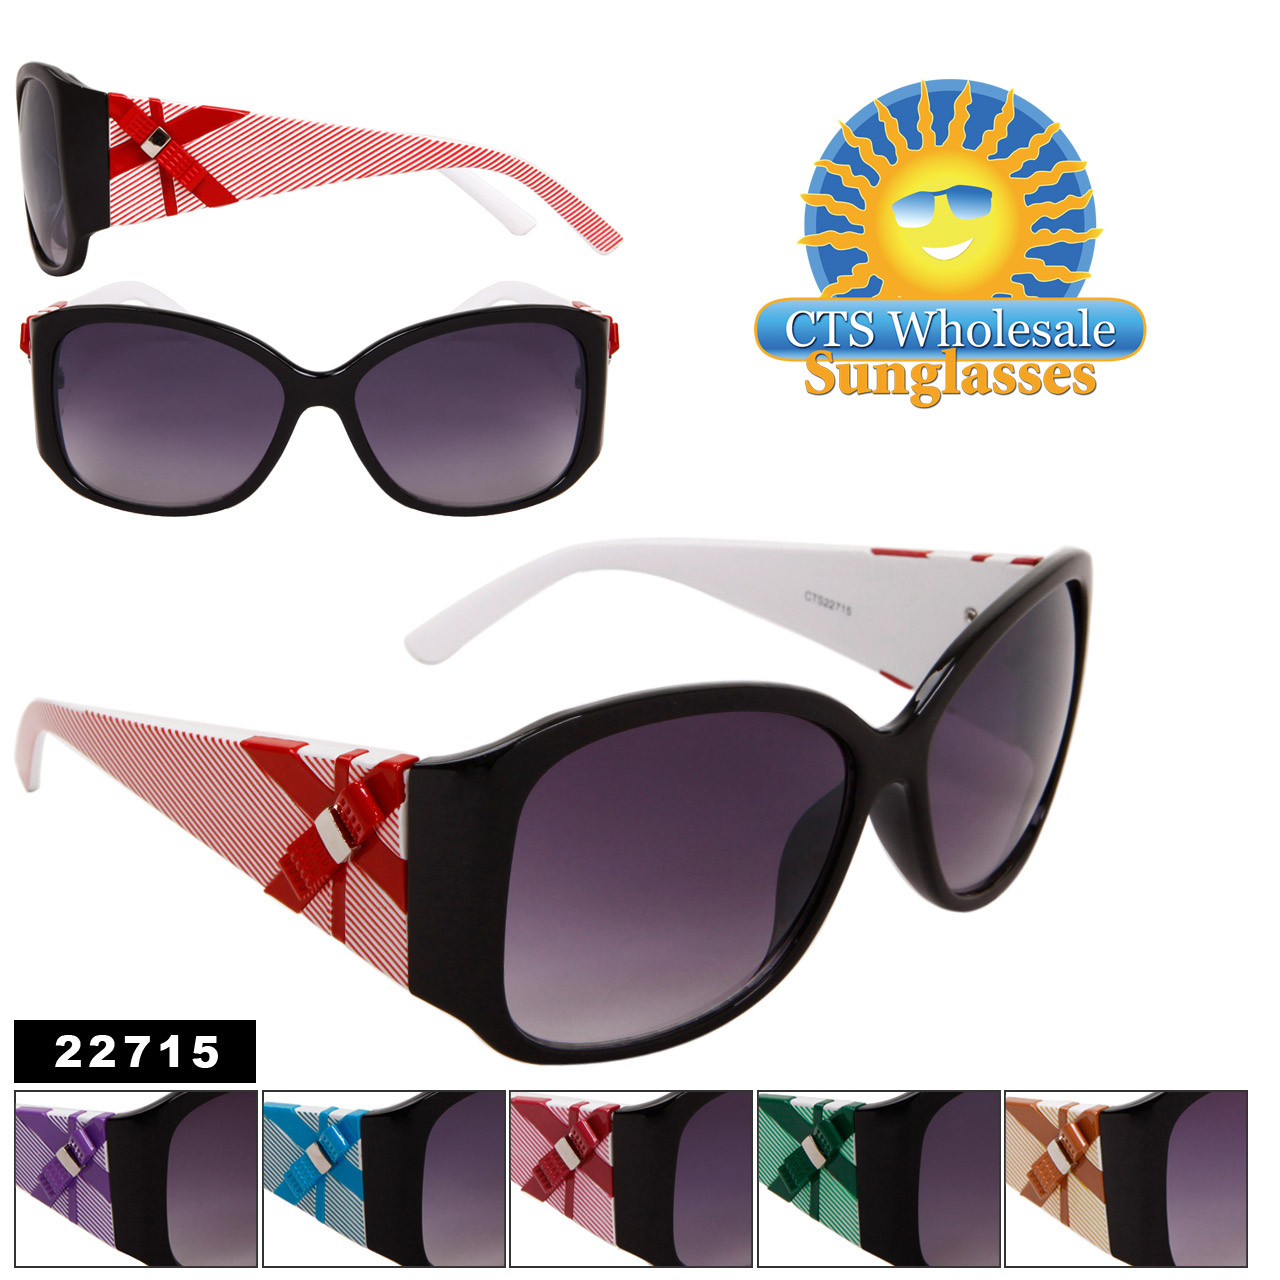 Wholesale Sunglasses with Bows 22715